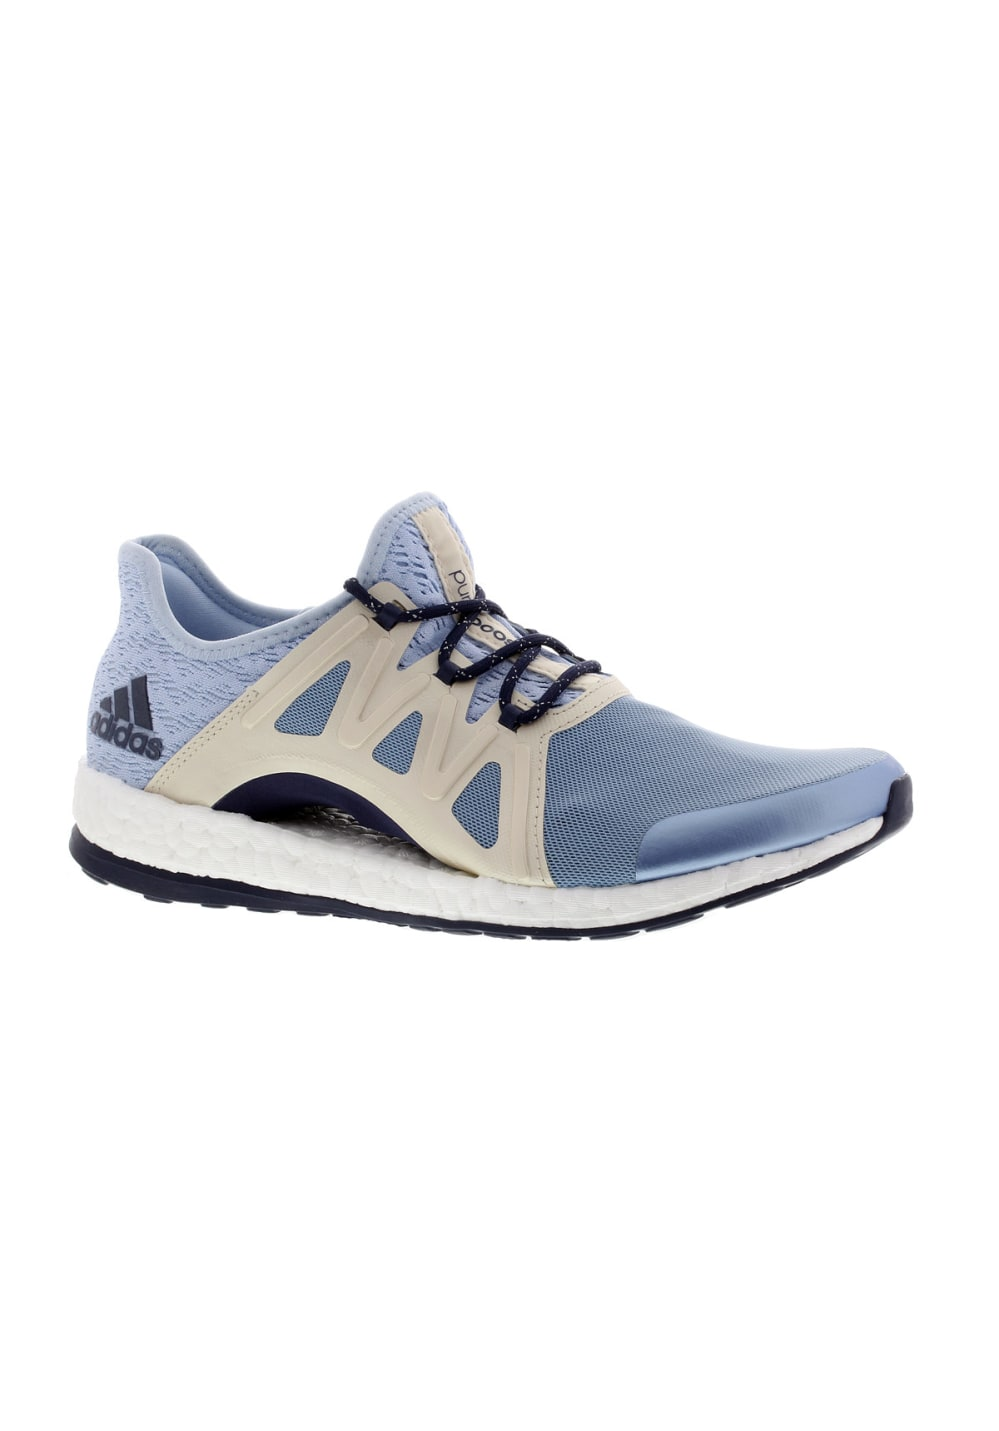 175b8ec998d4 adidas Pureboost Xpose Clima - Running shoes for Women - Grey